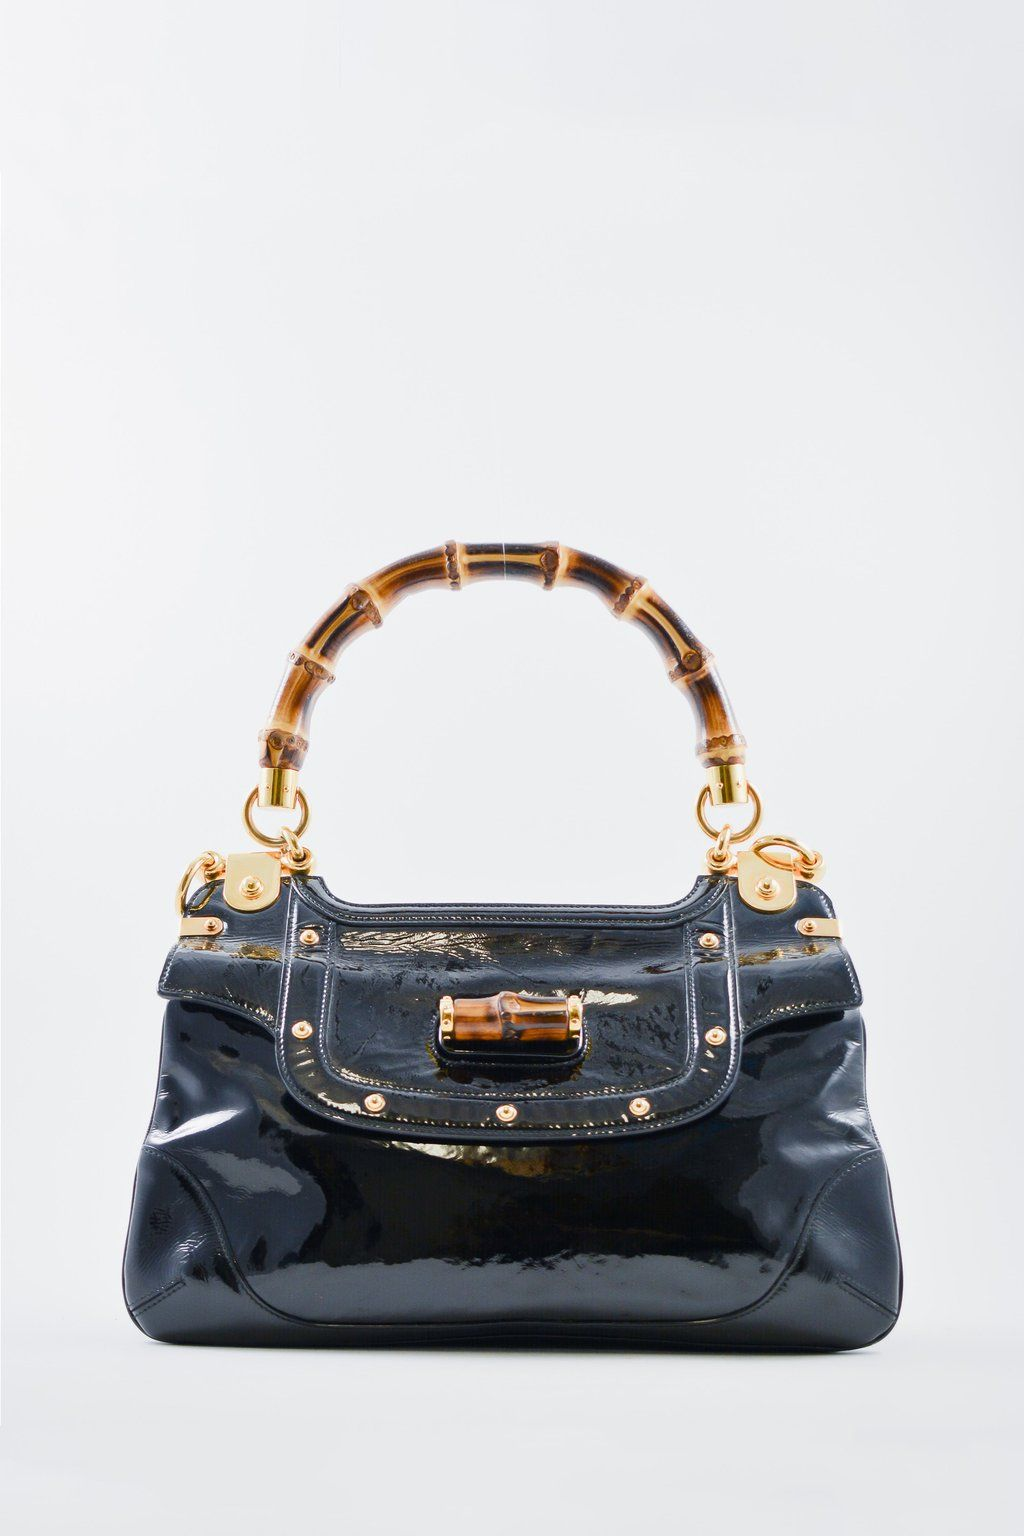 dbf77df120f0 Gucci Black Patent Handbag with Bamboo Handle  MineAndYours